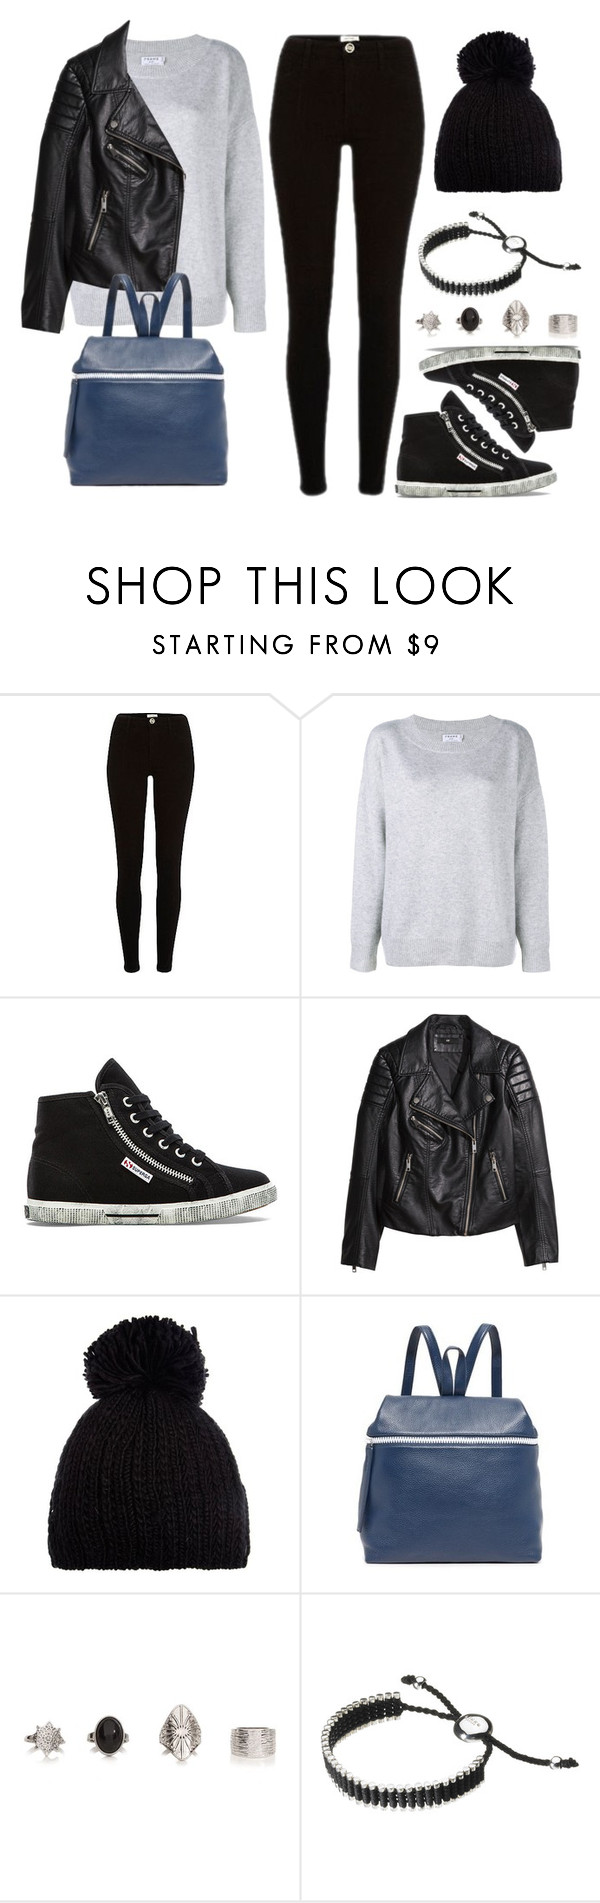 """""""Style #11707"""" by vany-alvarado ❤ liked on Polyvore featuring Frame, Superga, H&M, Barts, Kara and Links of London"""